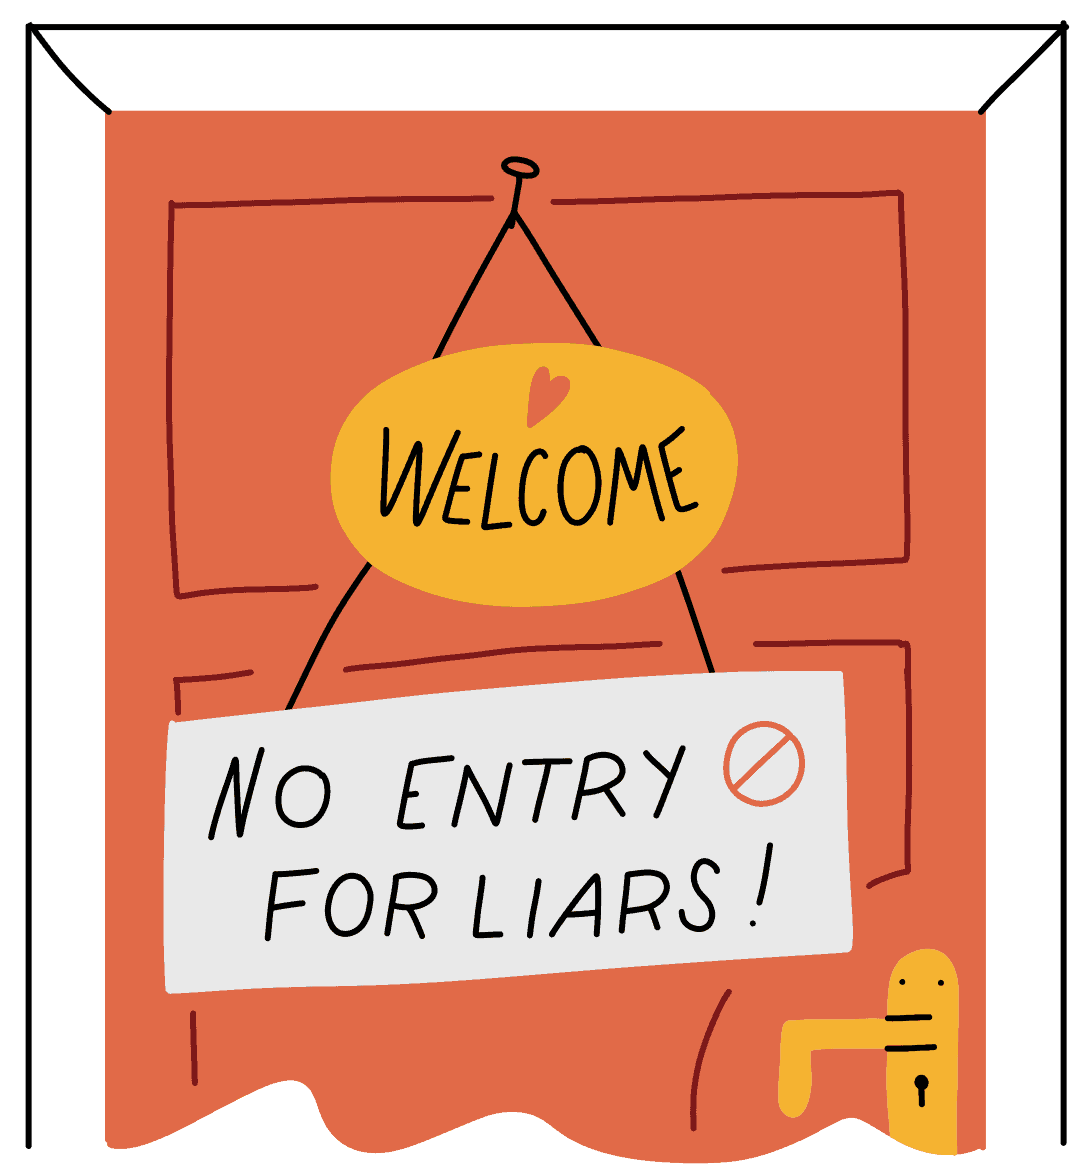 Door with a sign indicating no liars are allowed entry